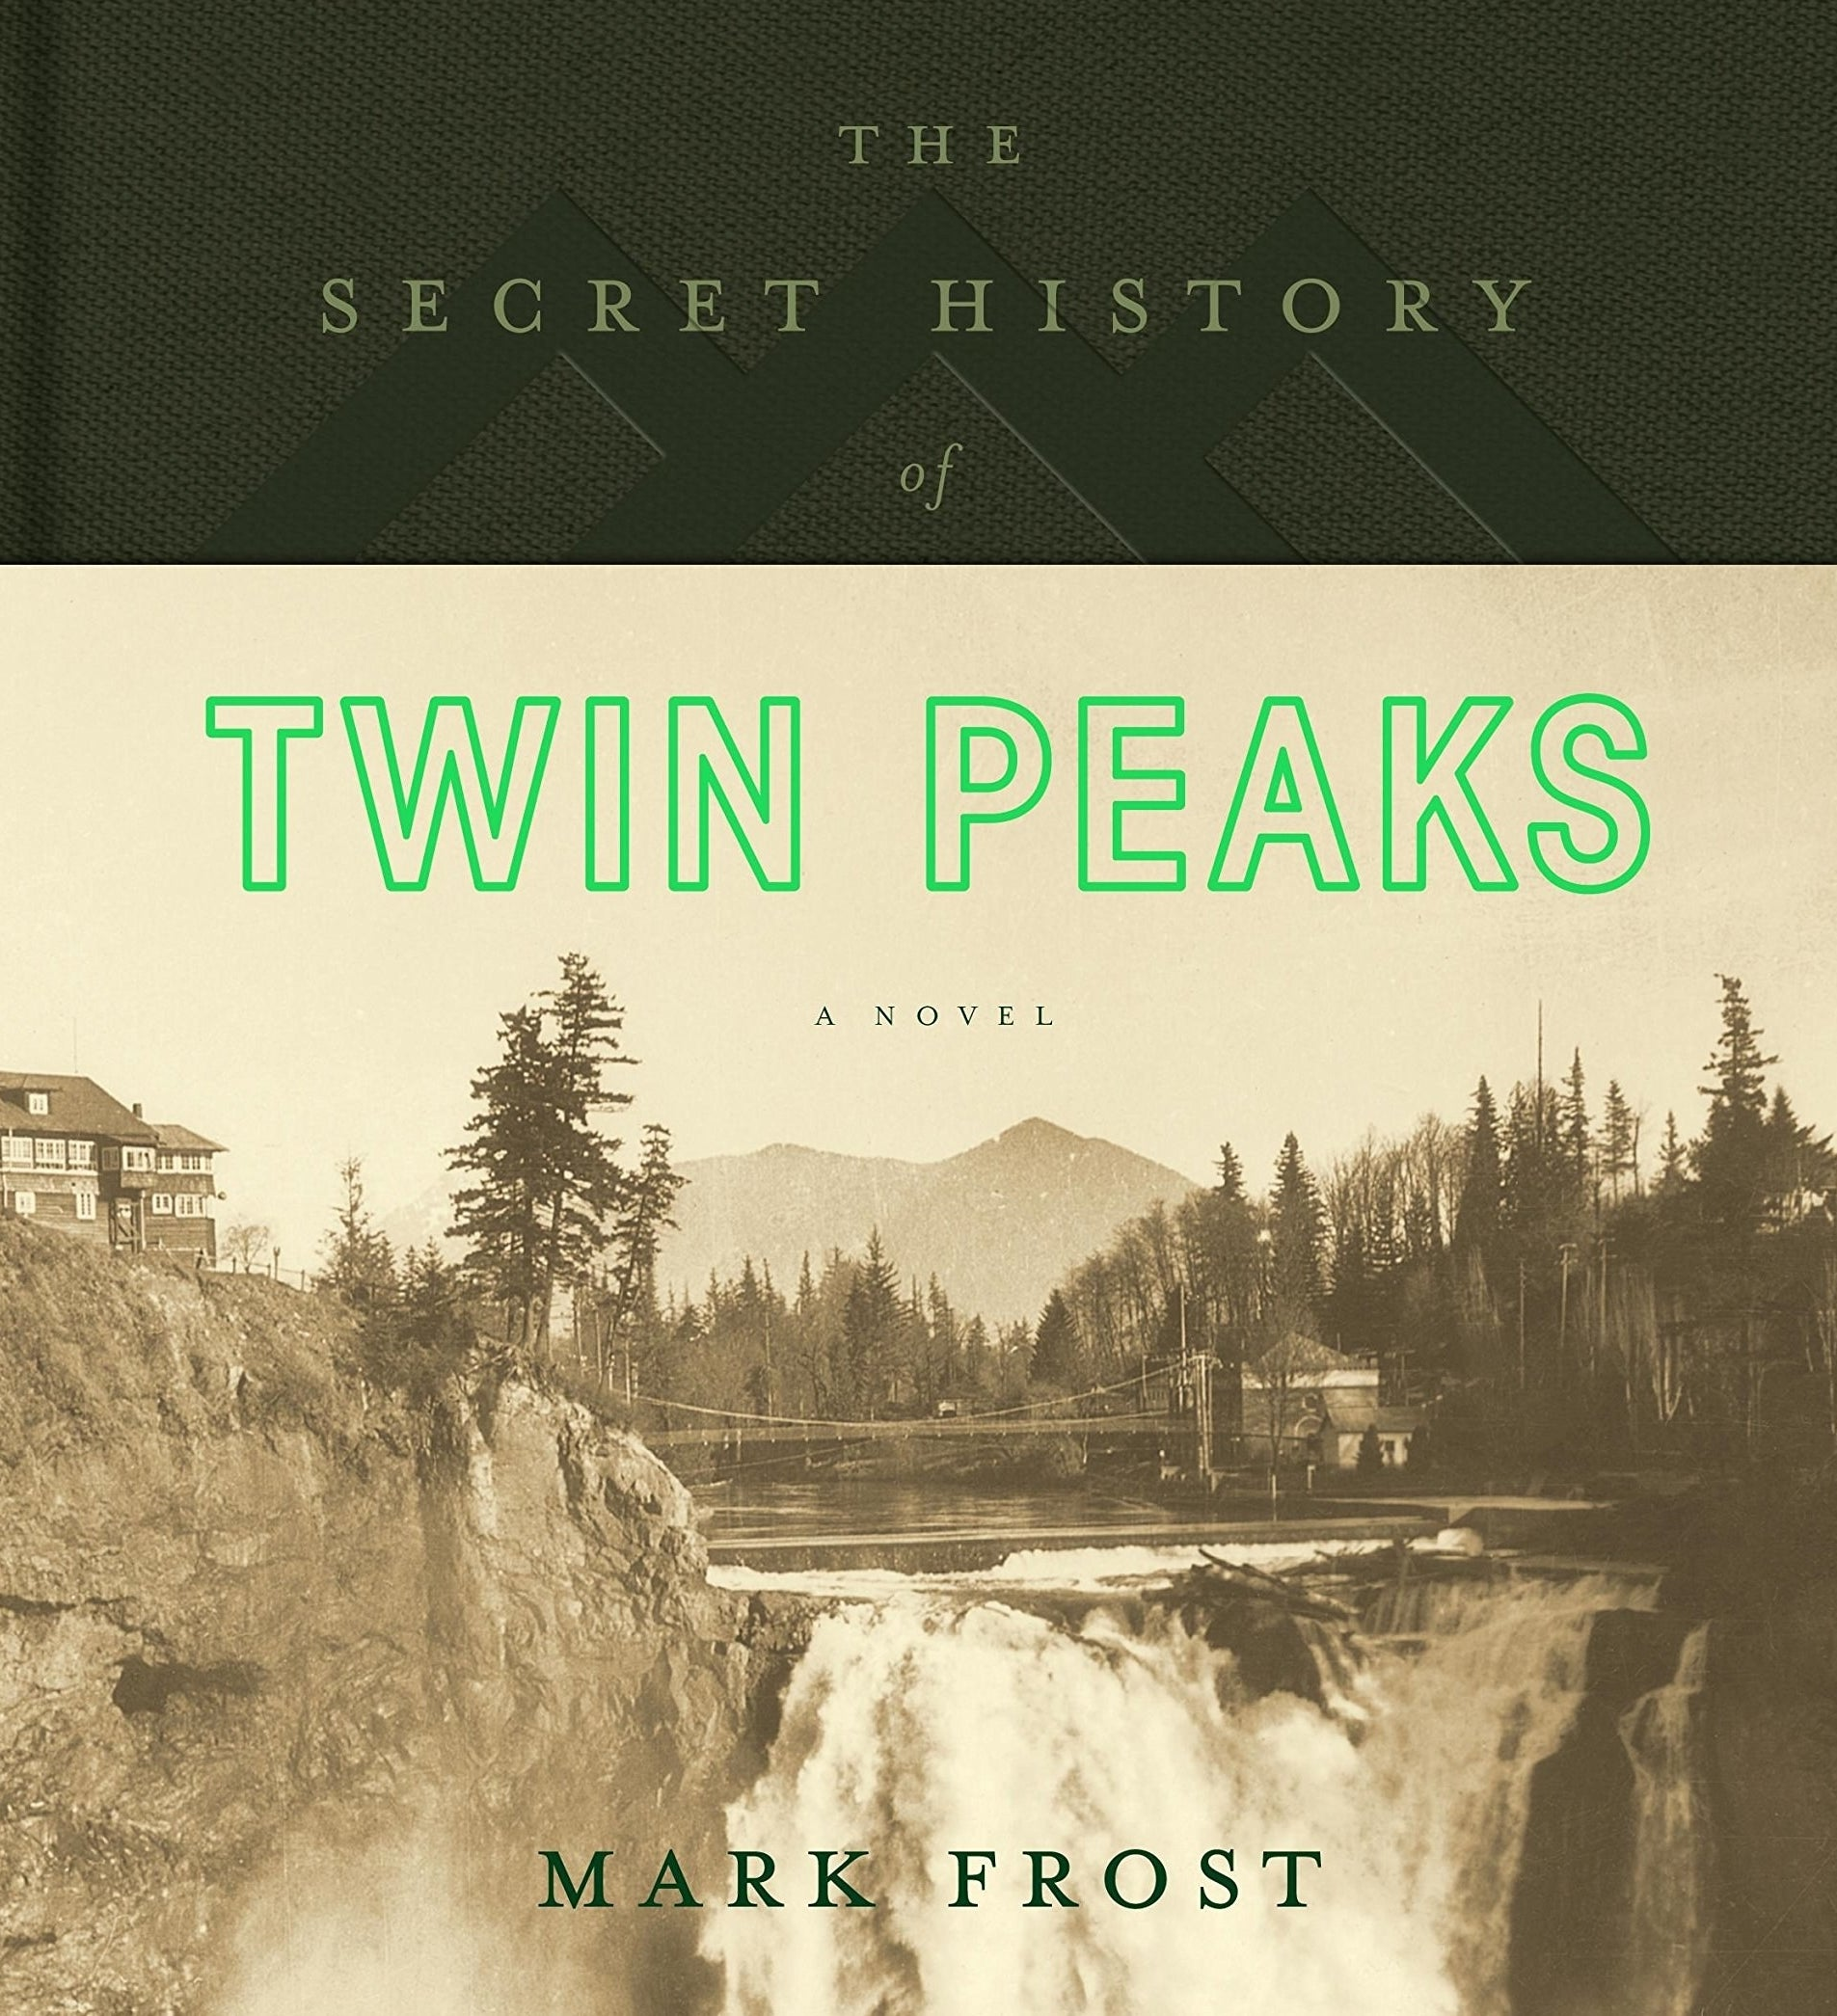 The cover of The Secret History of Twin Peaks by Mark Frost